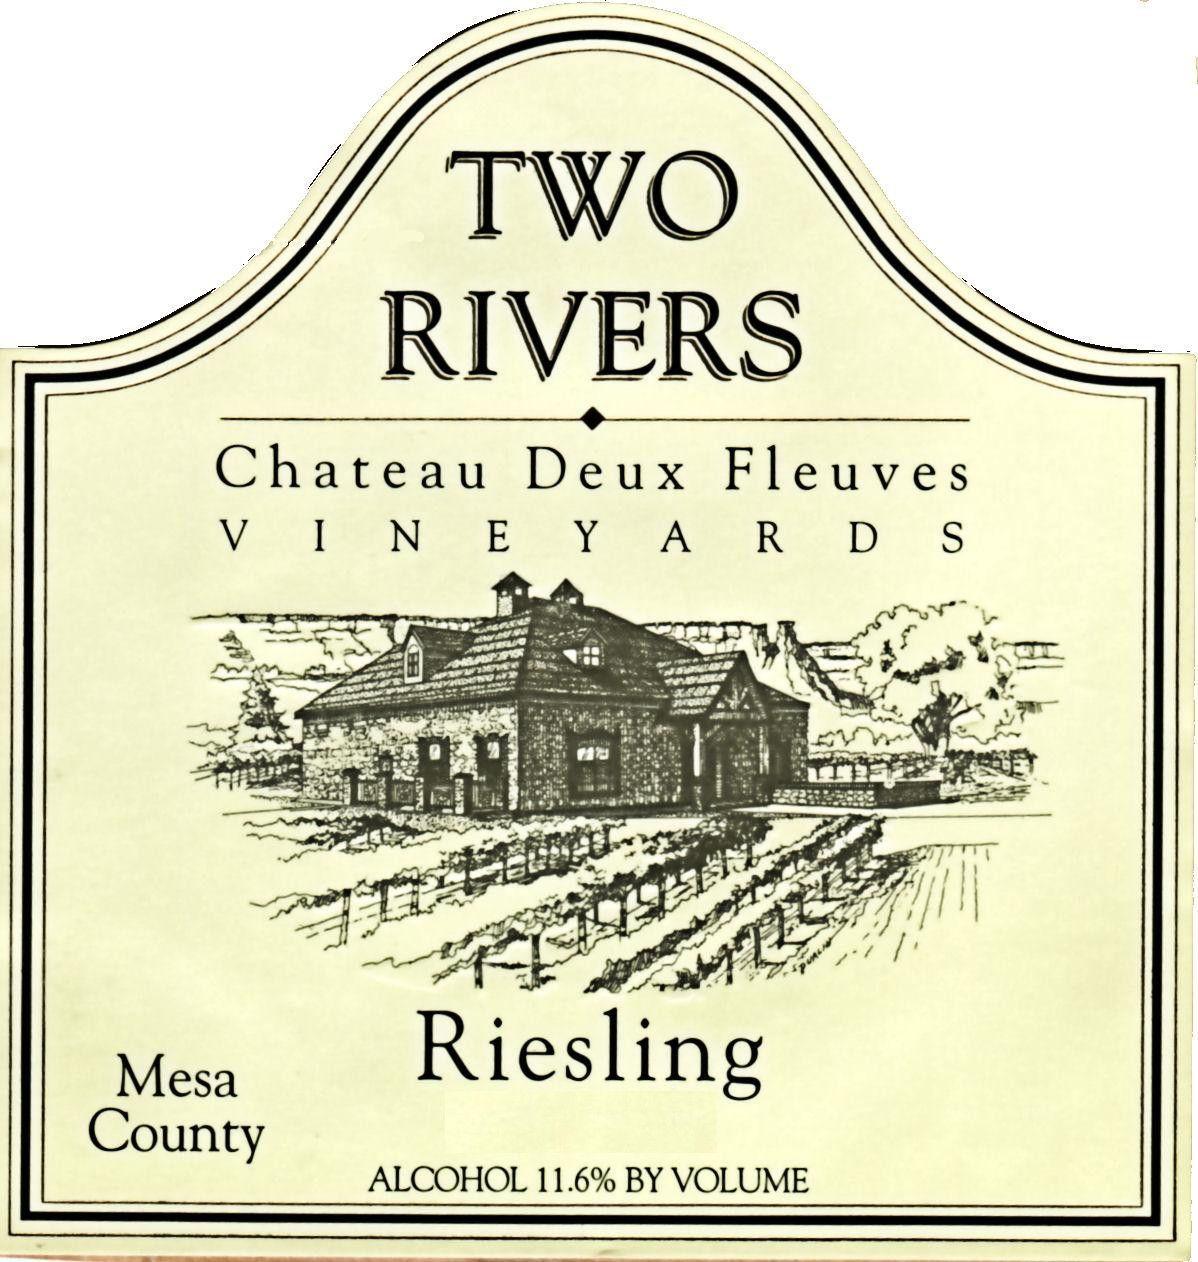 Two Rivers Winery and Chateau Mesa County Deux Fleuves Vineyards Riesling 2013 Front Label